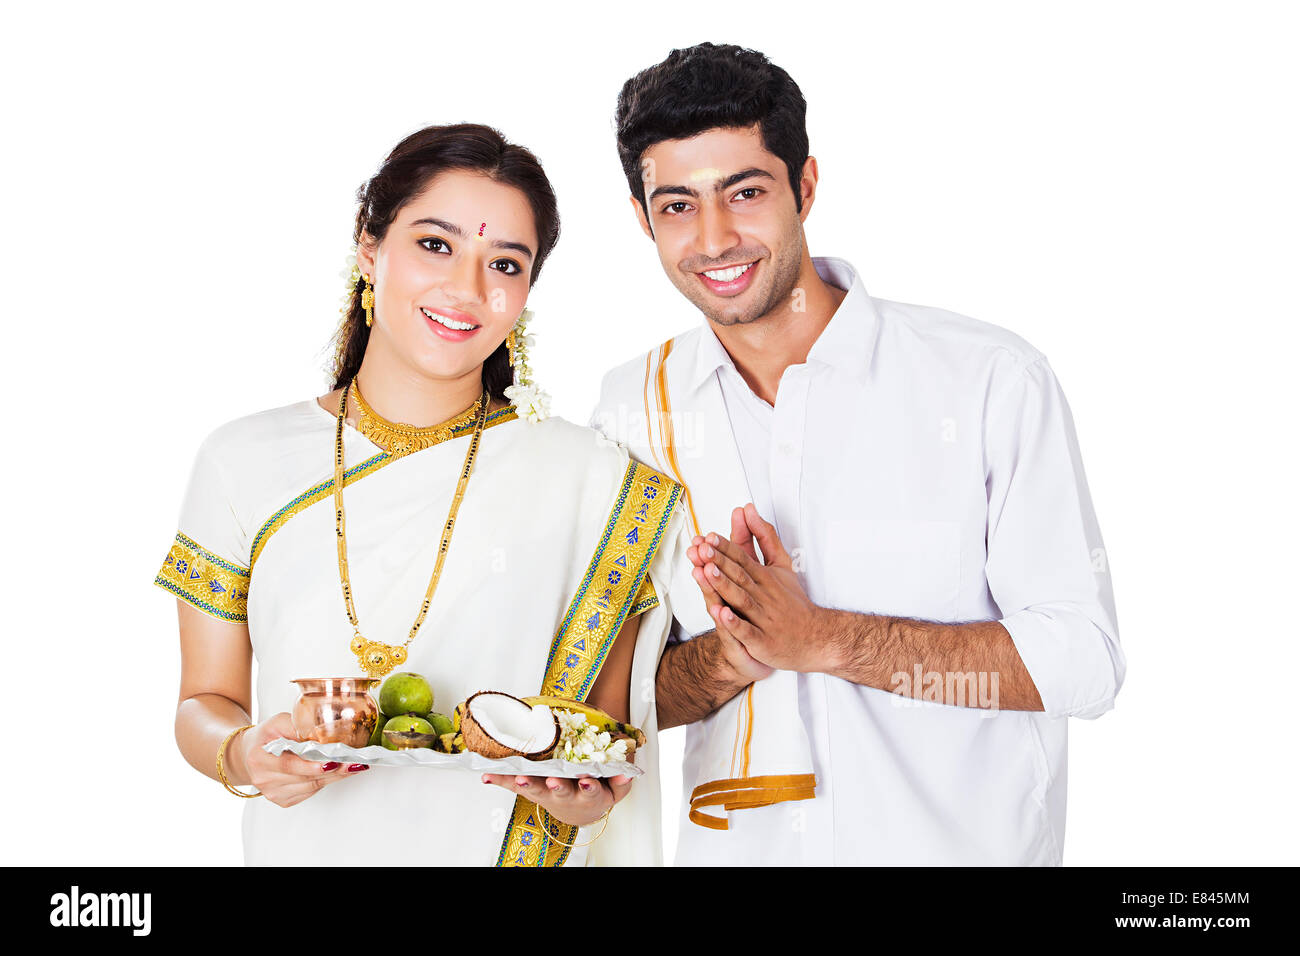 South Indian Couple Welcome Stock Photo 73851028 Alamy